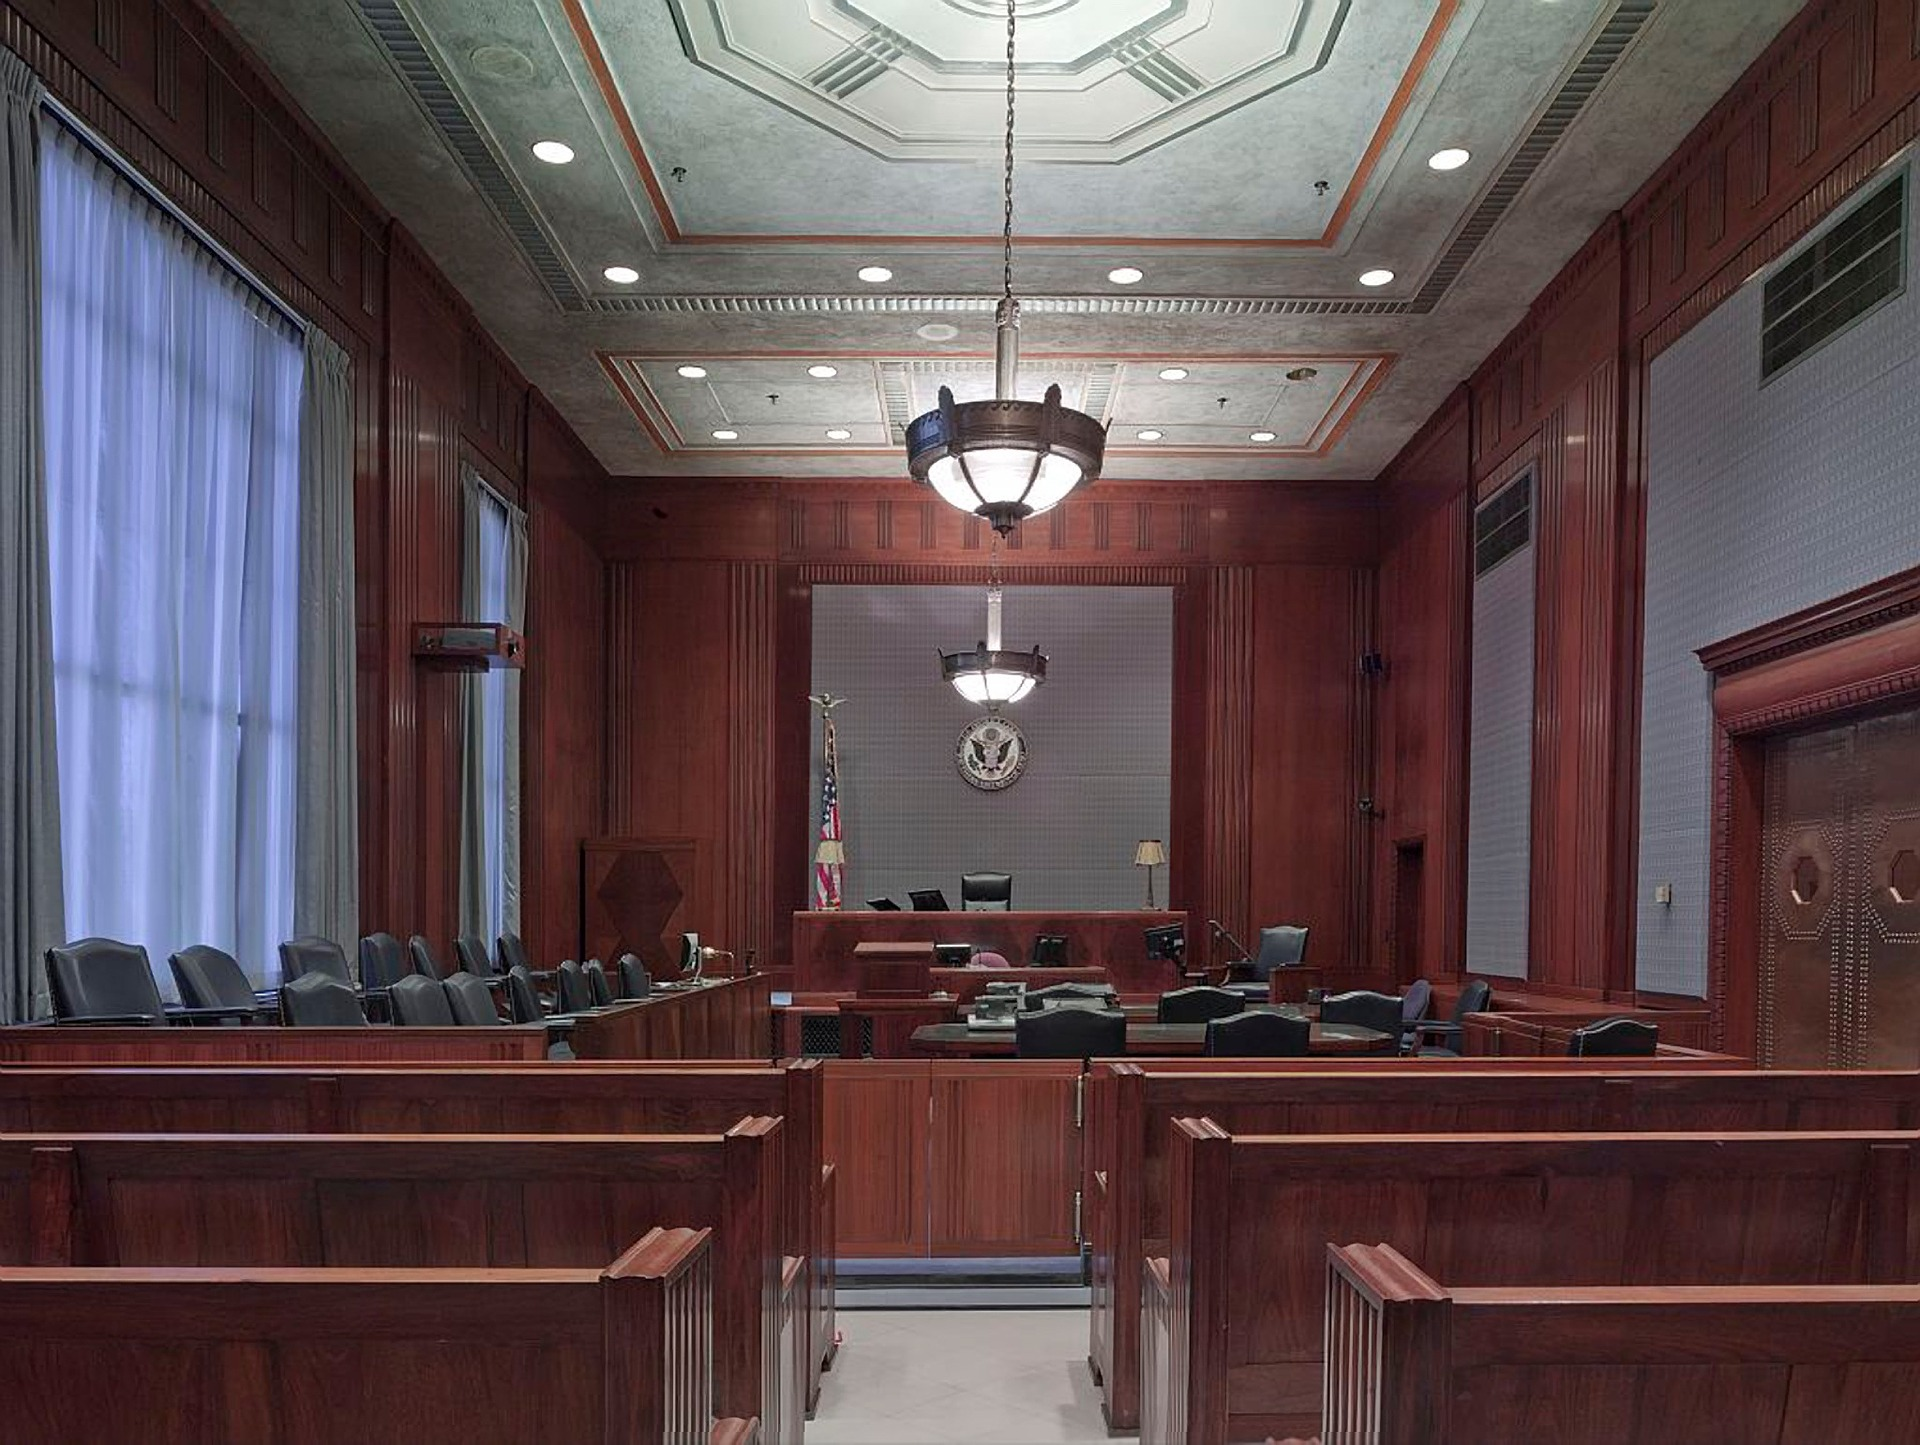 empty courtroom for jury duty